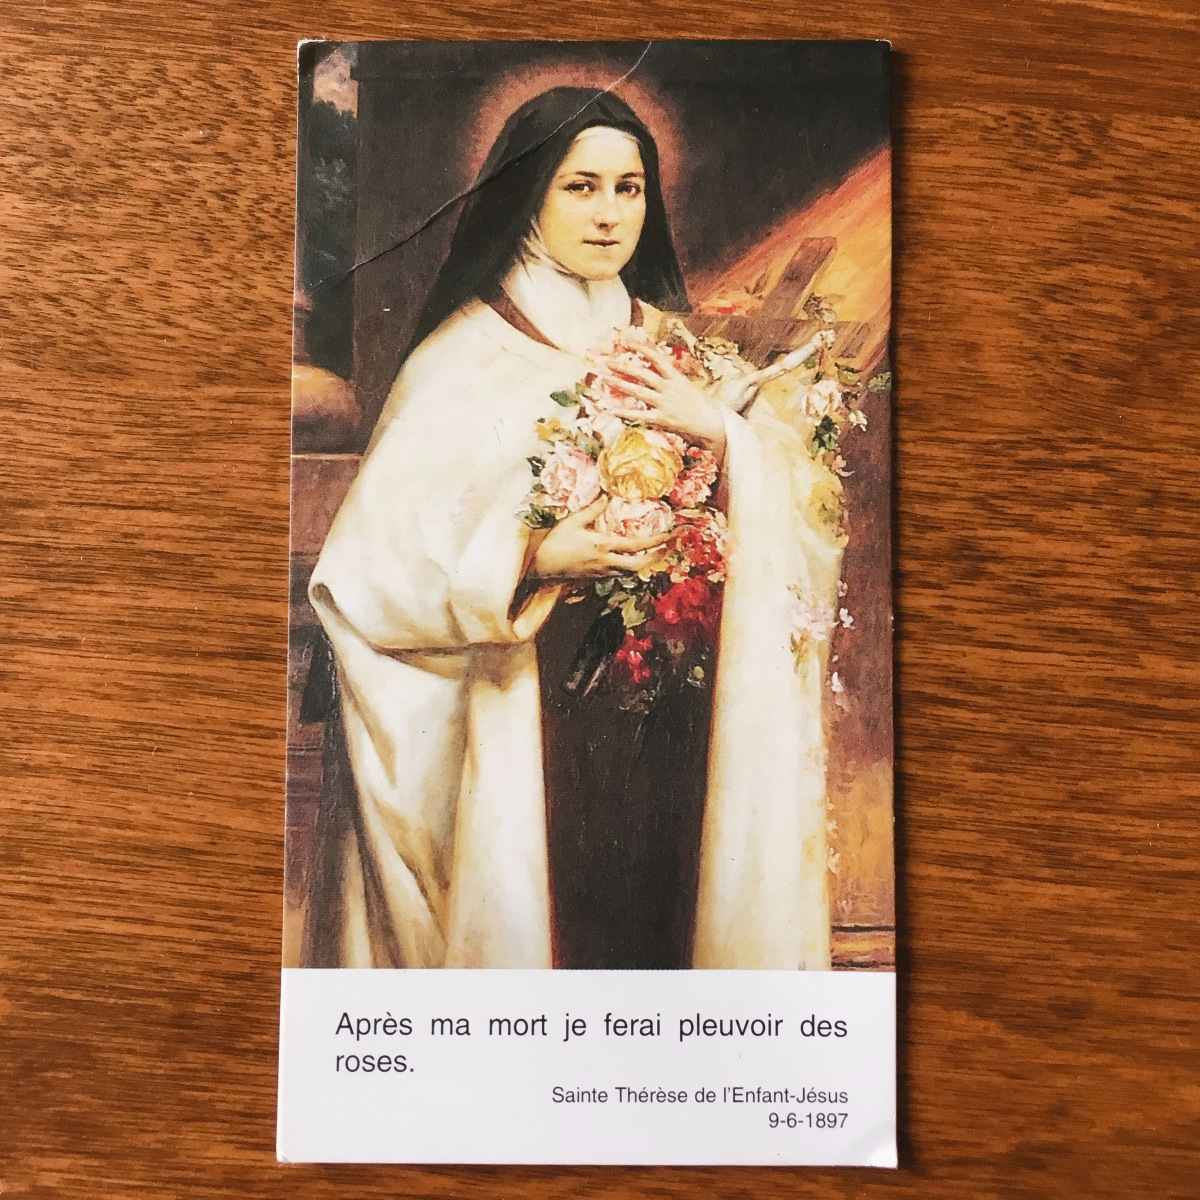 After my death, I will let fall a shower of roses - St. Therese